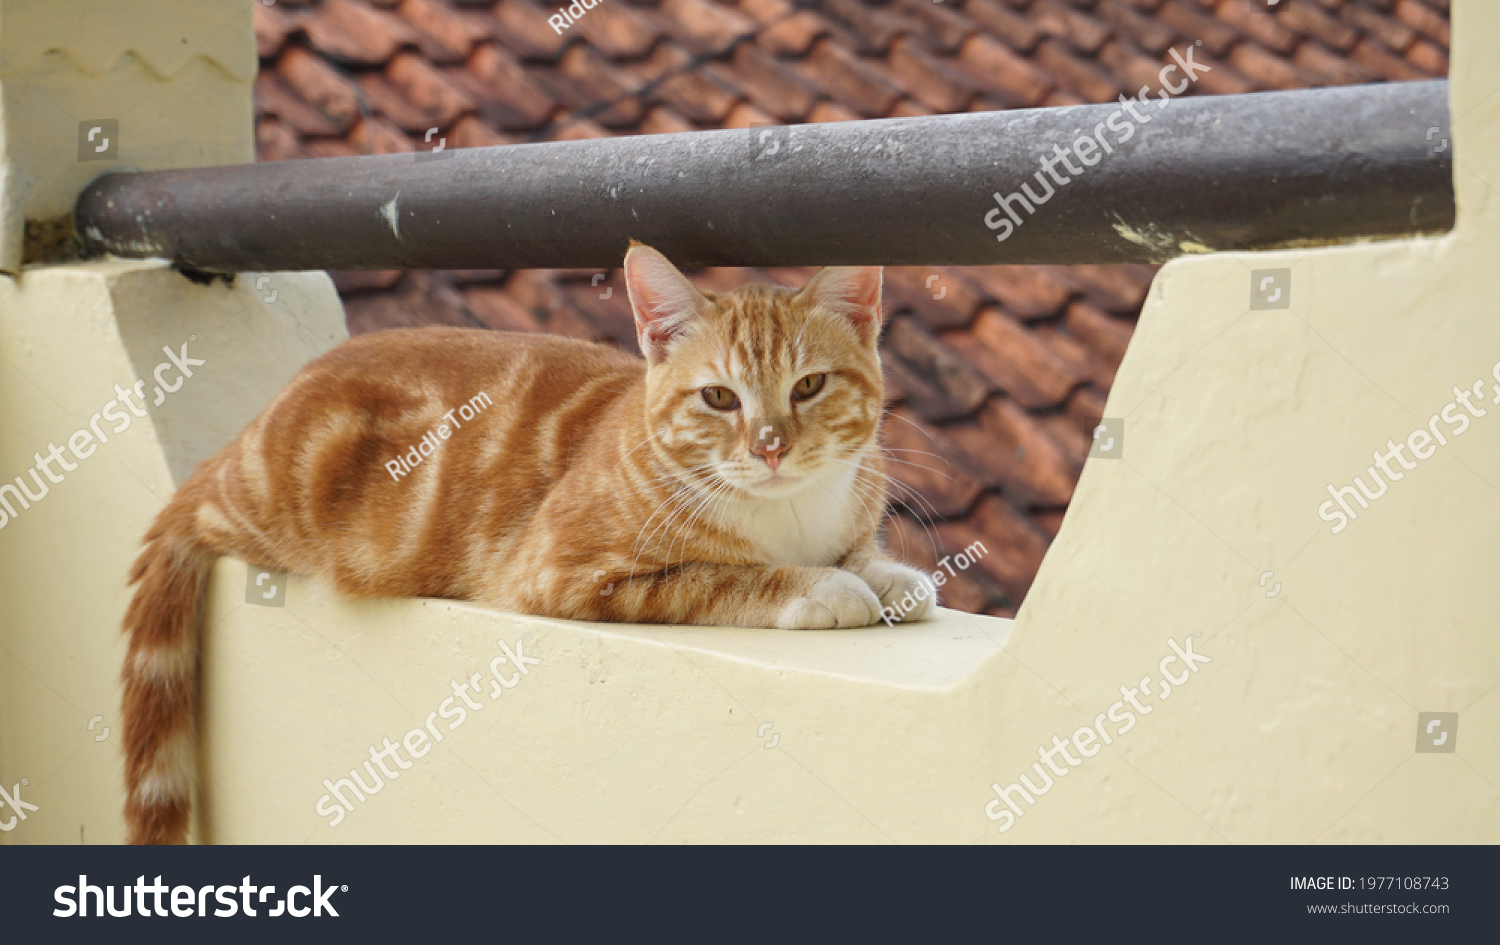 The orange cat getting rest in the balcony #1977108743